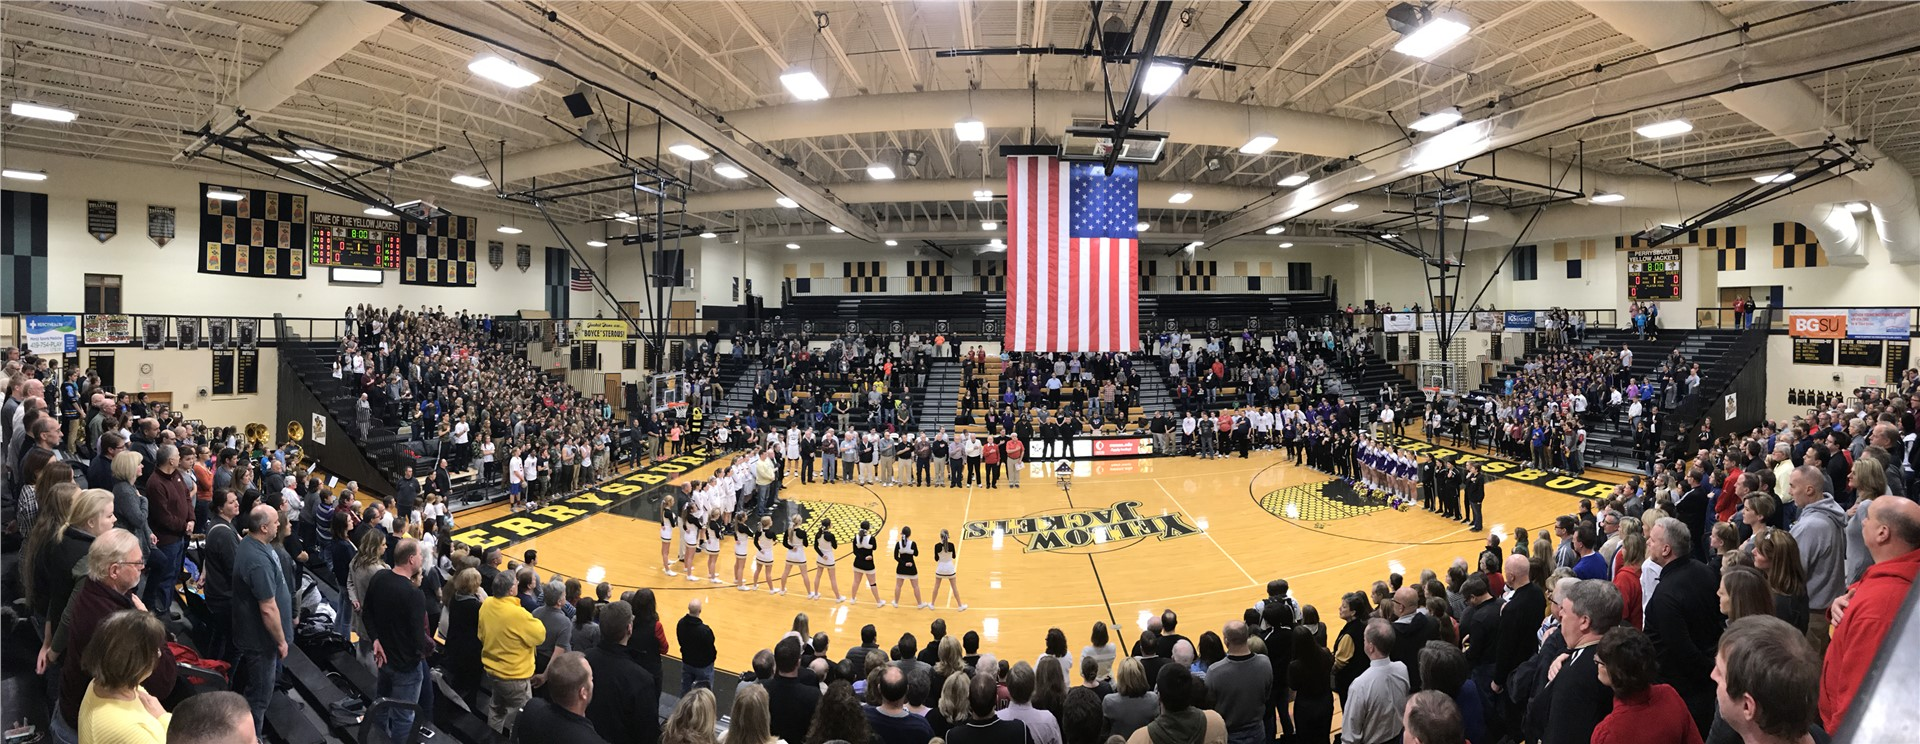 PHS crowd standing for the national anthem in the gym